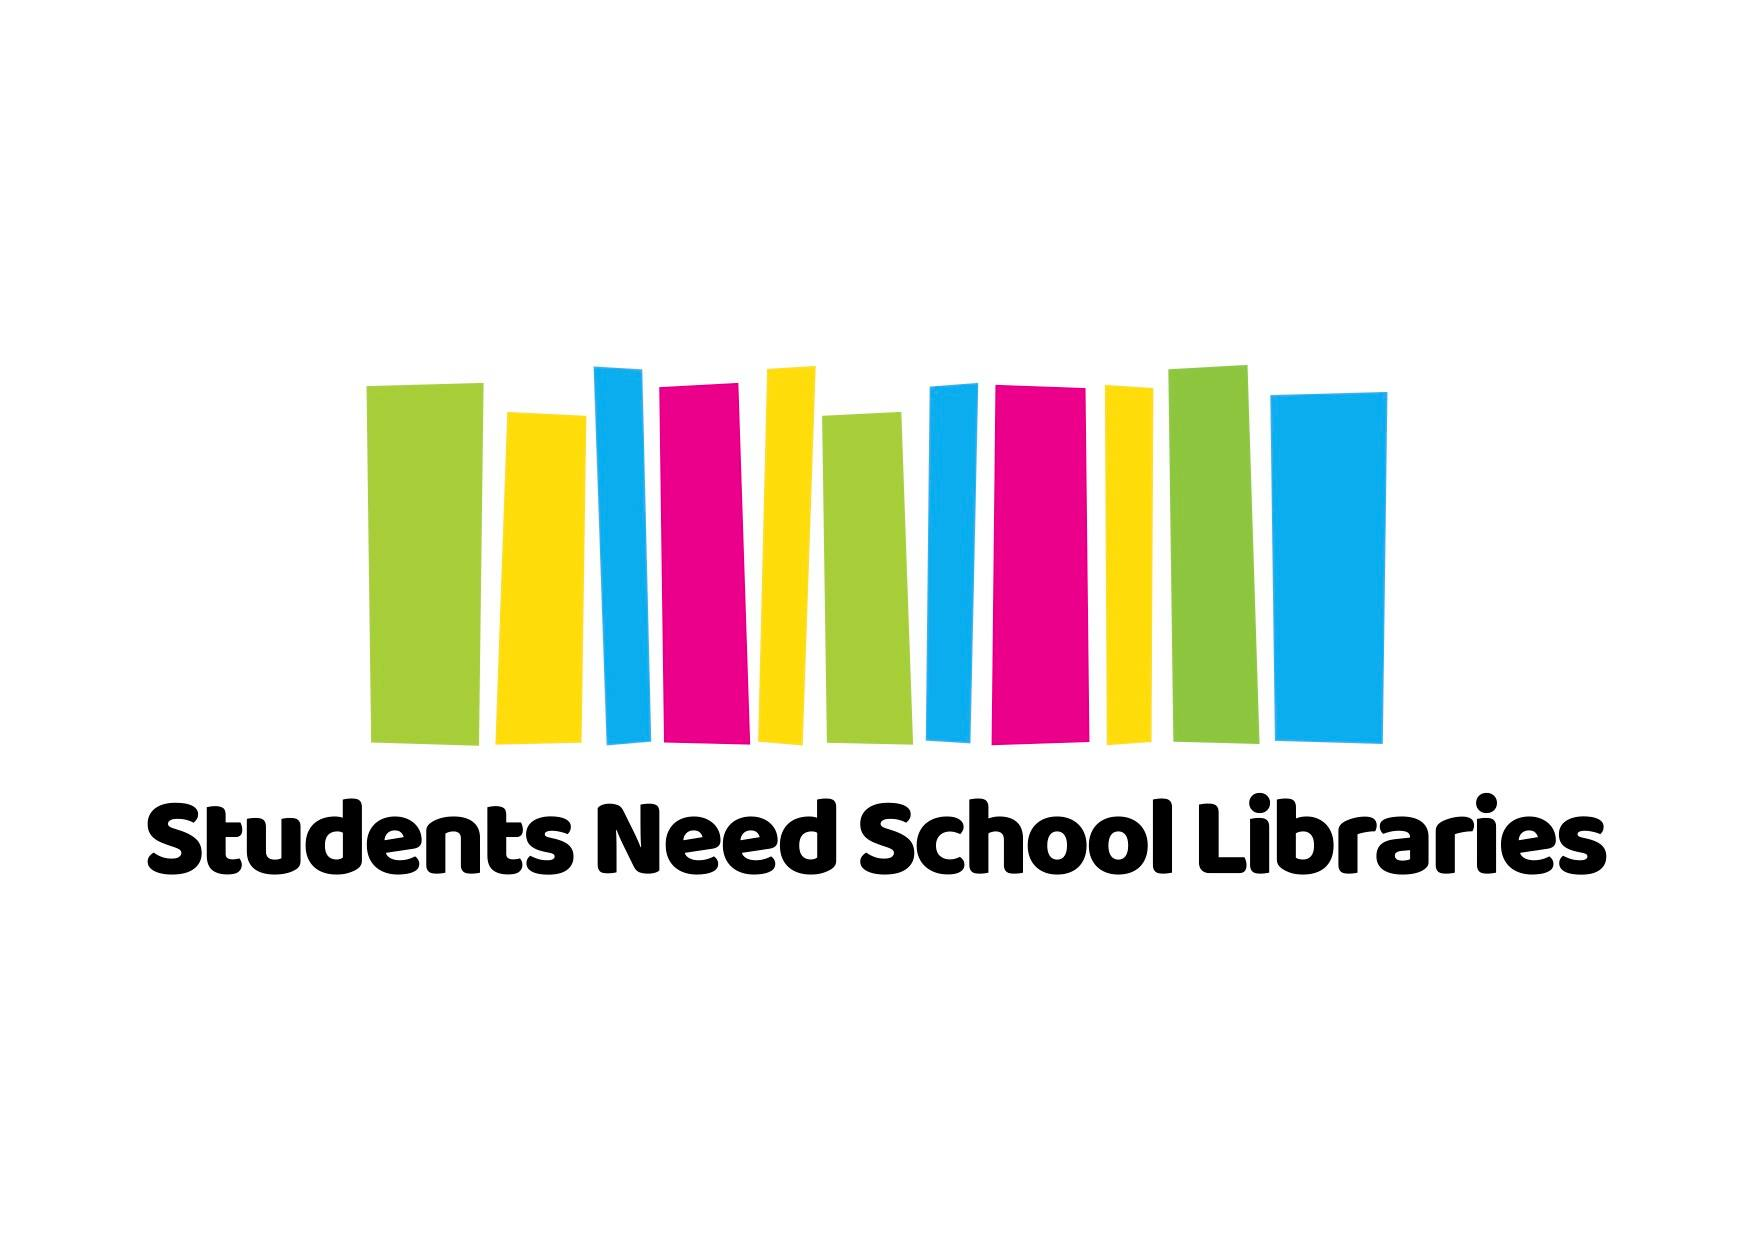 Students Need School Libraries campaign logo.